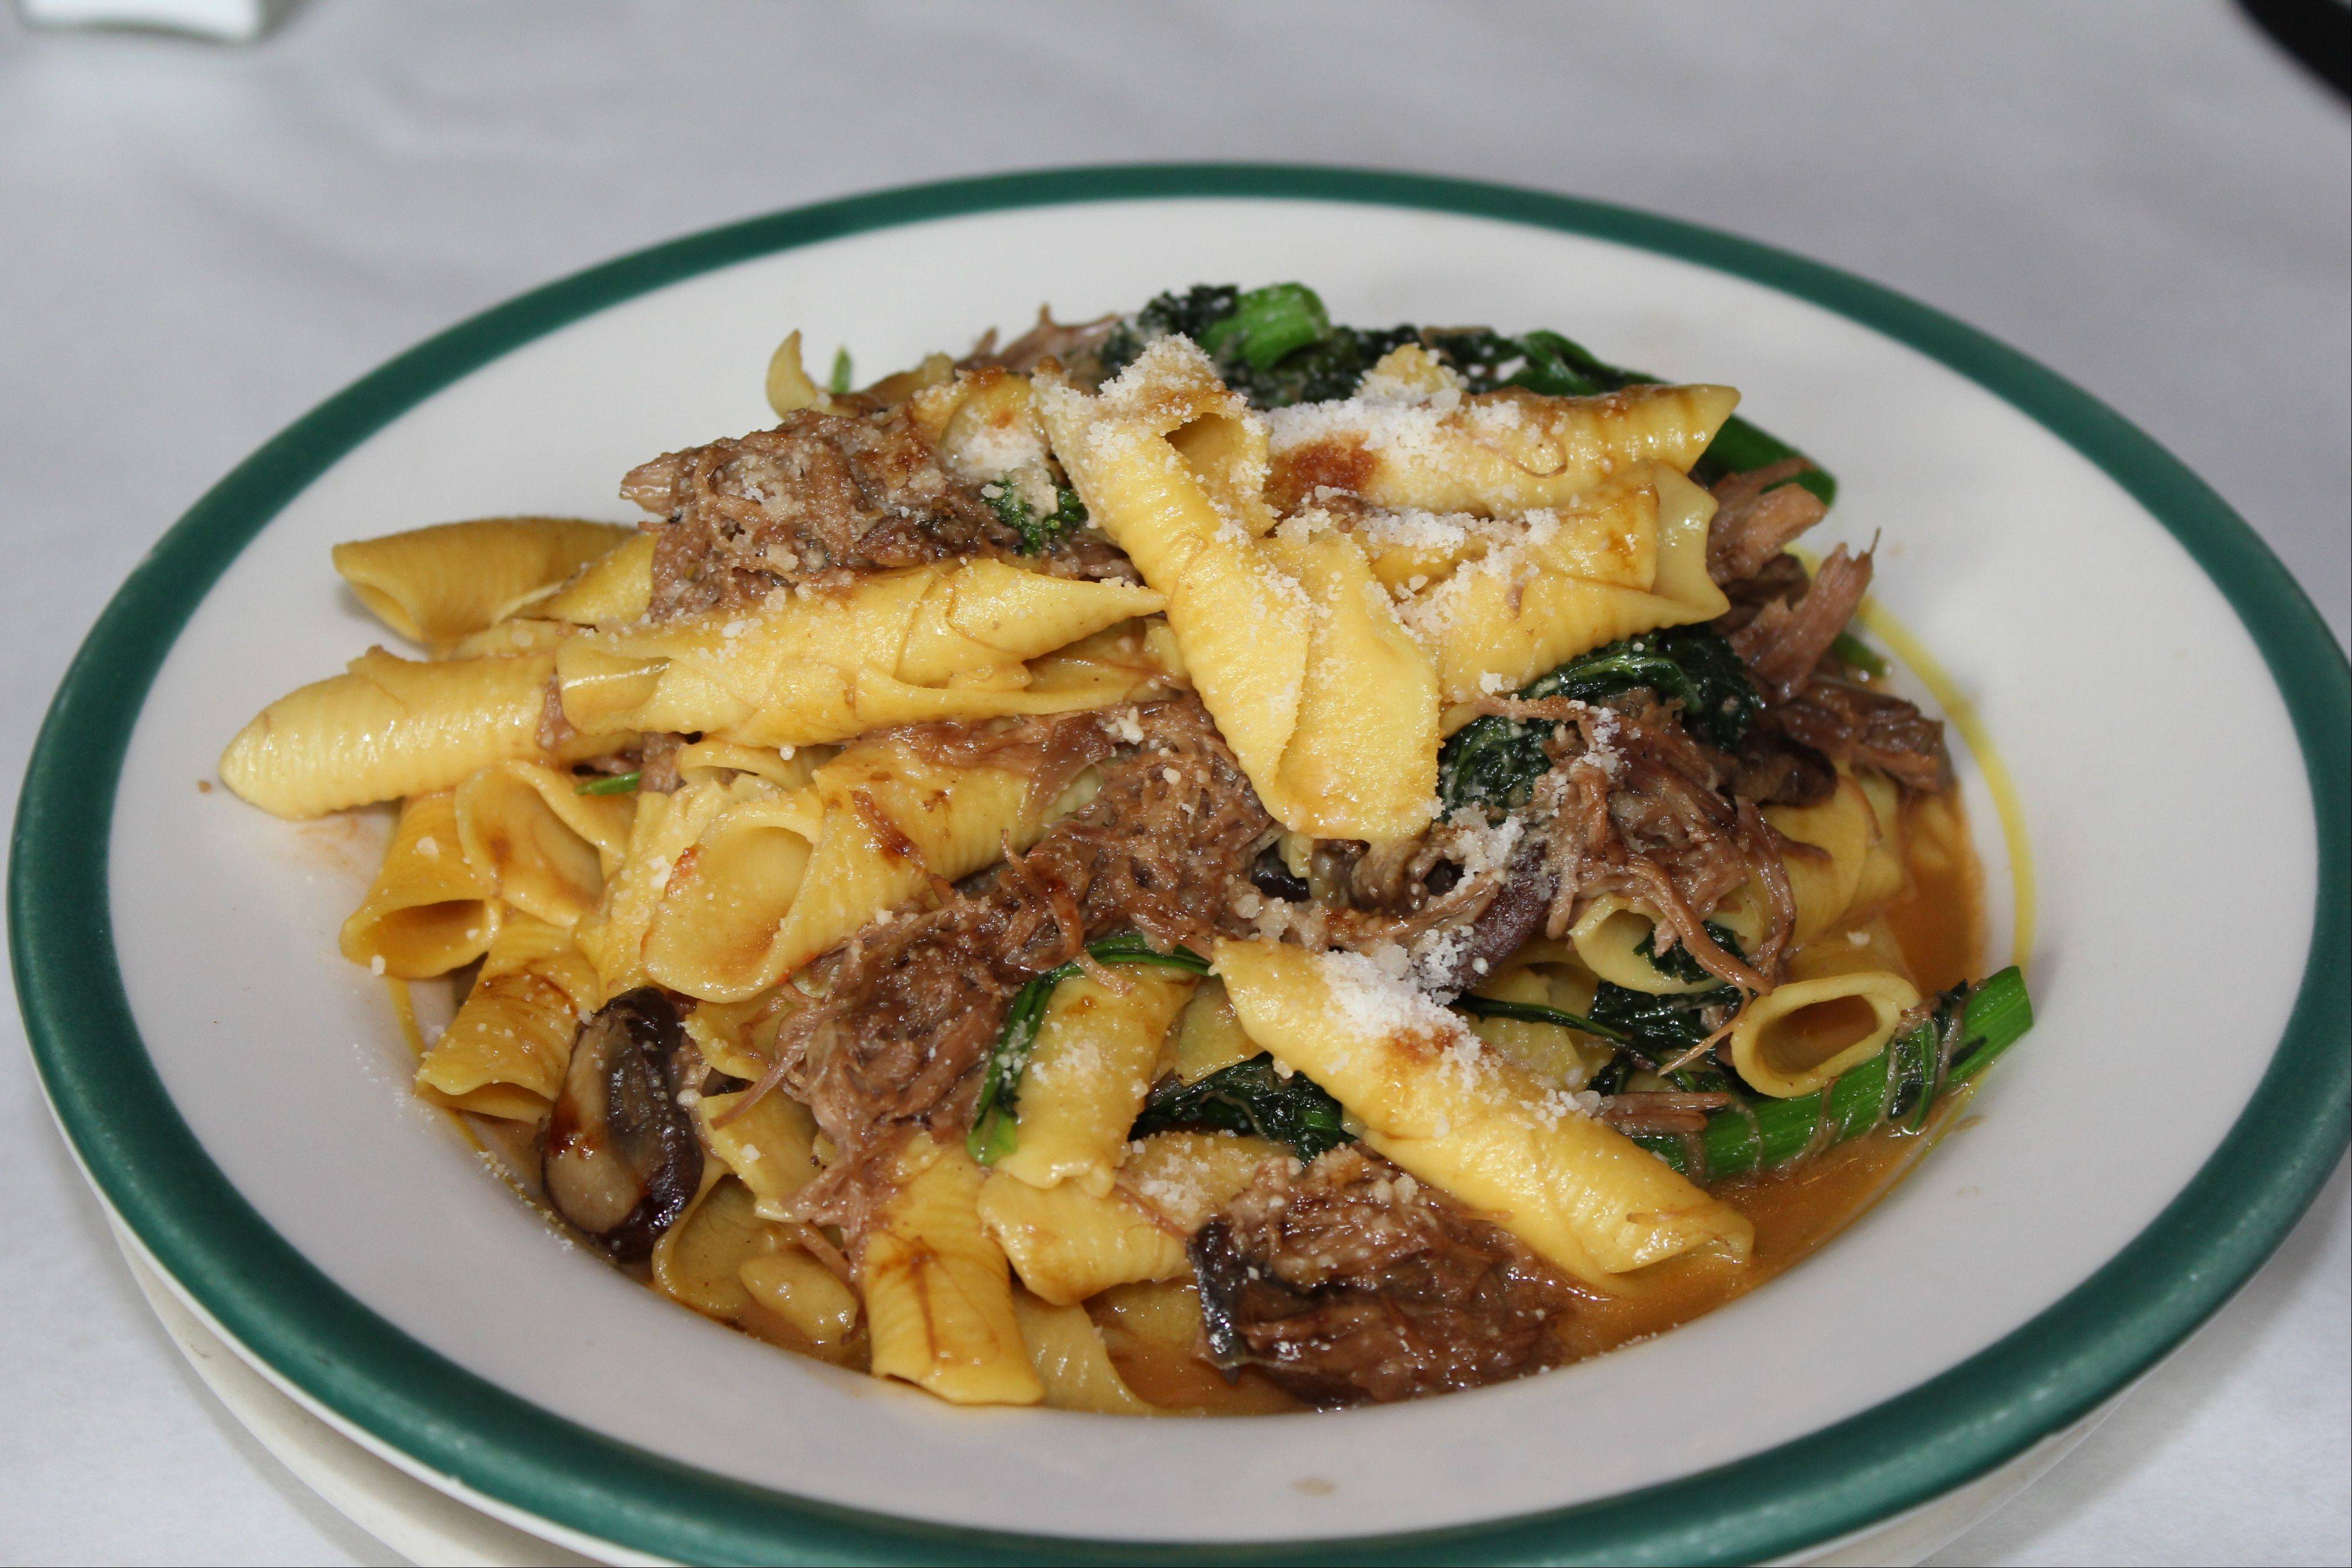 Carlucci's chef Jonathan Harootunian's new menu includes garganelli with duck, wild mushrooms, broccoli rapini and fig syrup.